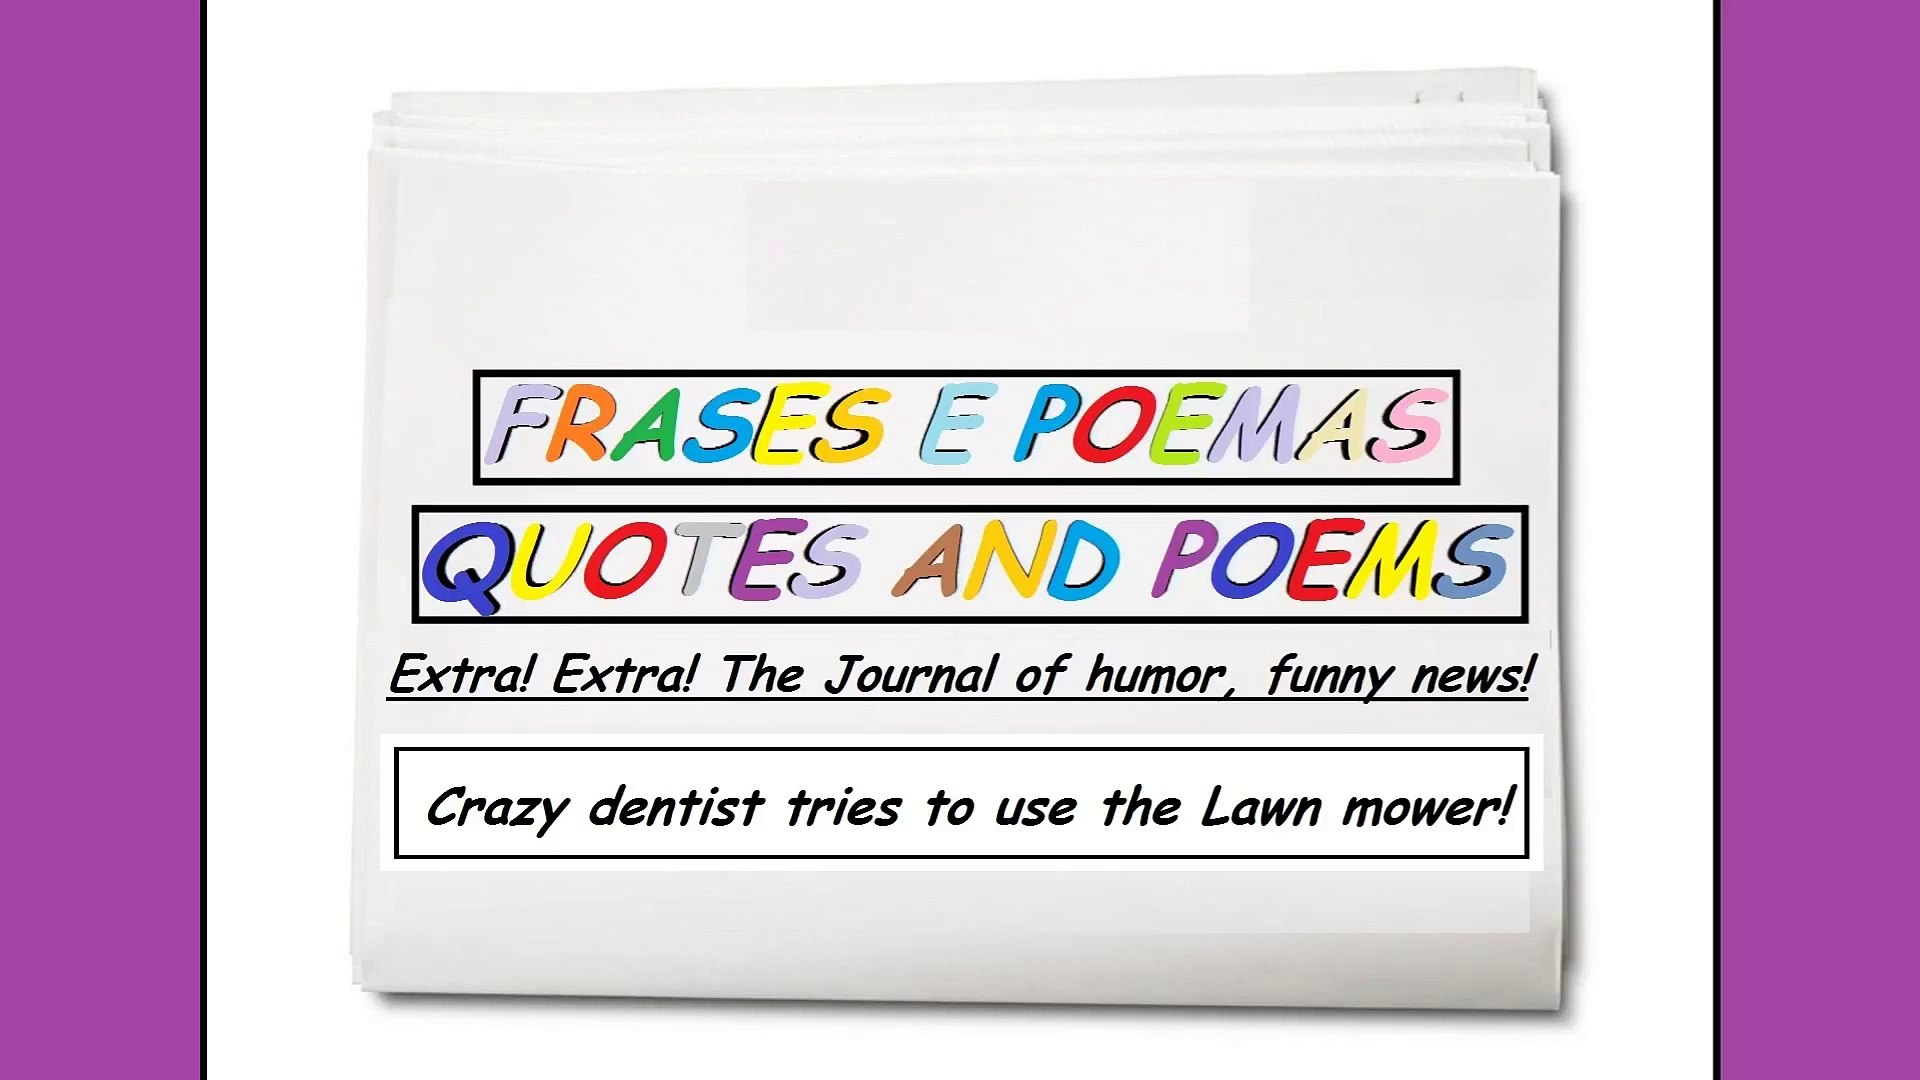 Funny news: Crazy dentist tries to use the Lawn mower! [Quotes and Poems]